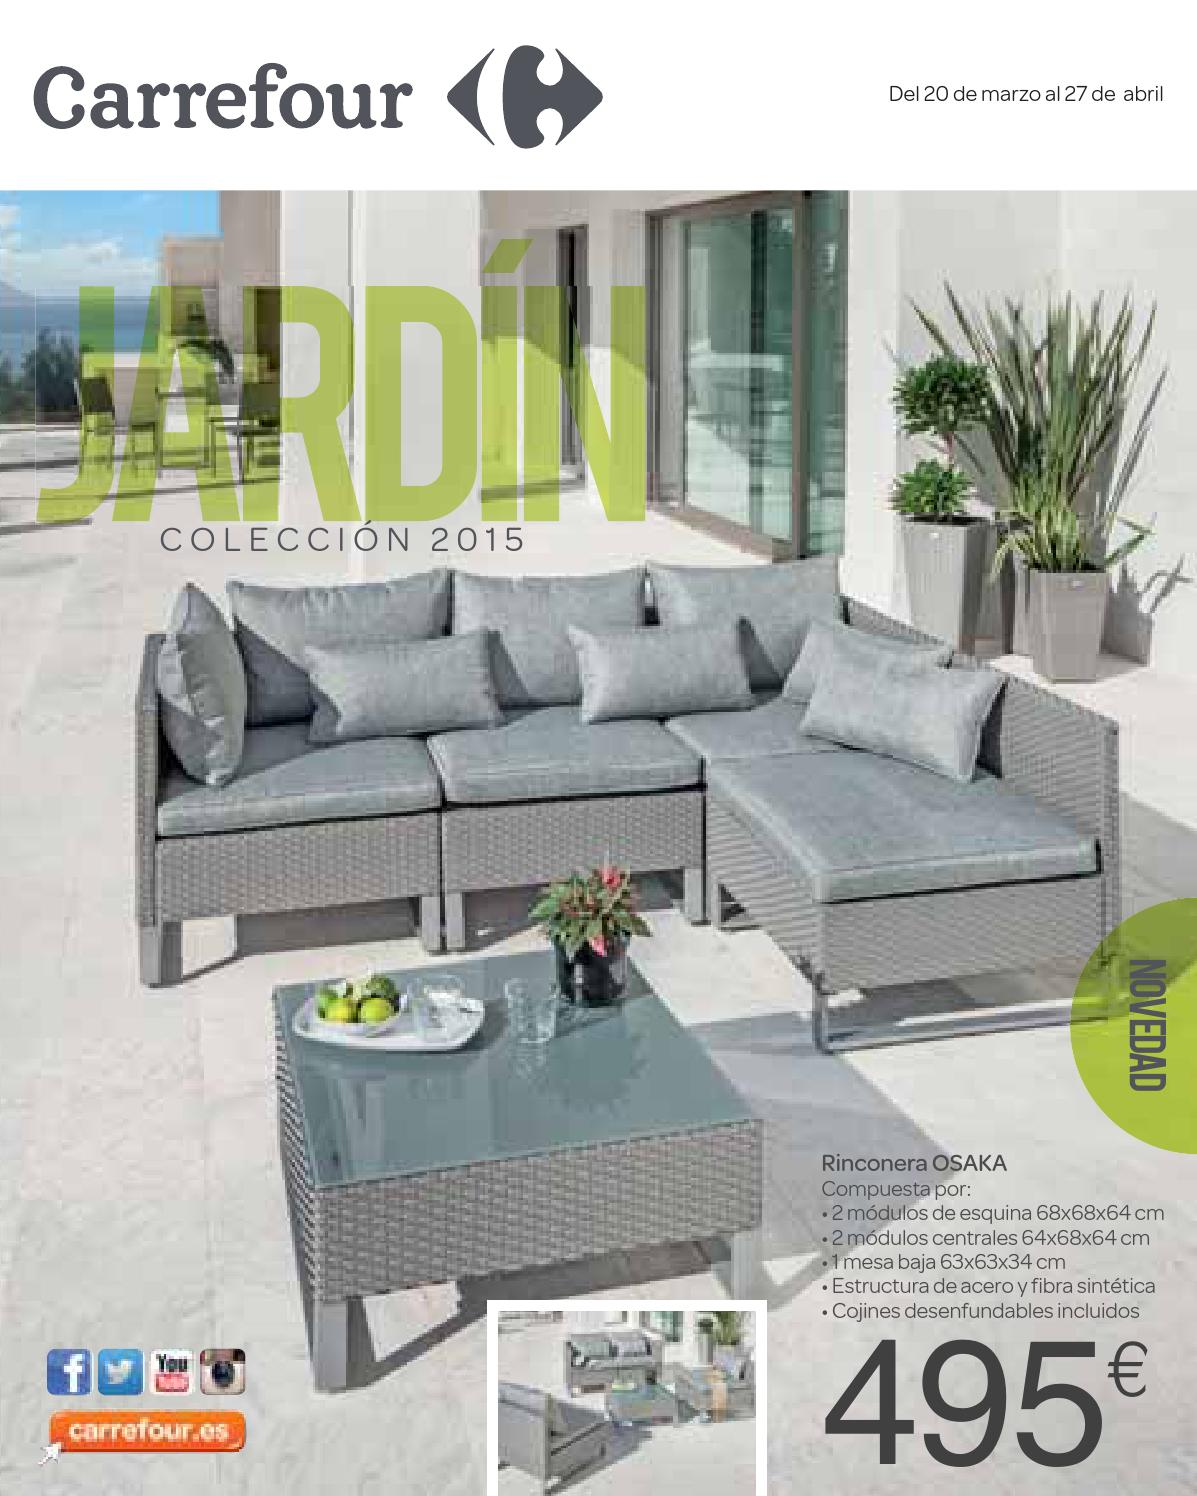 Jardin 200315 by losdescuentos - issuu